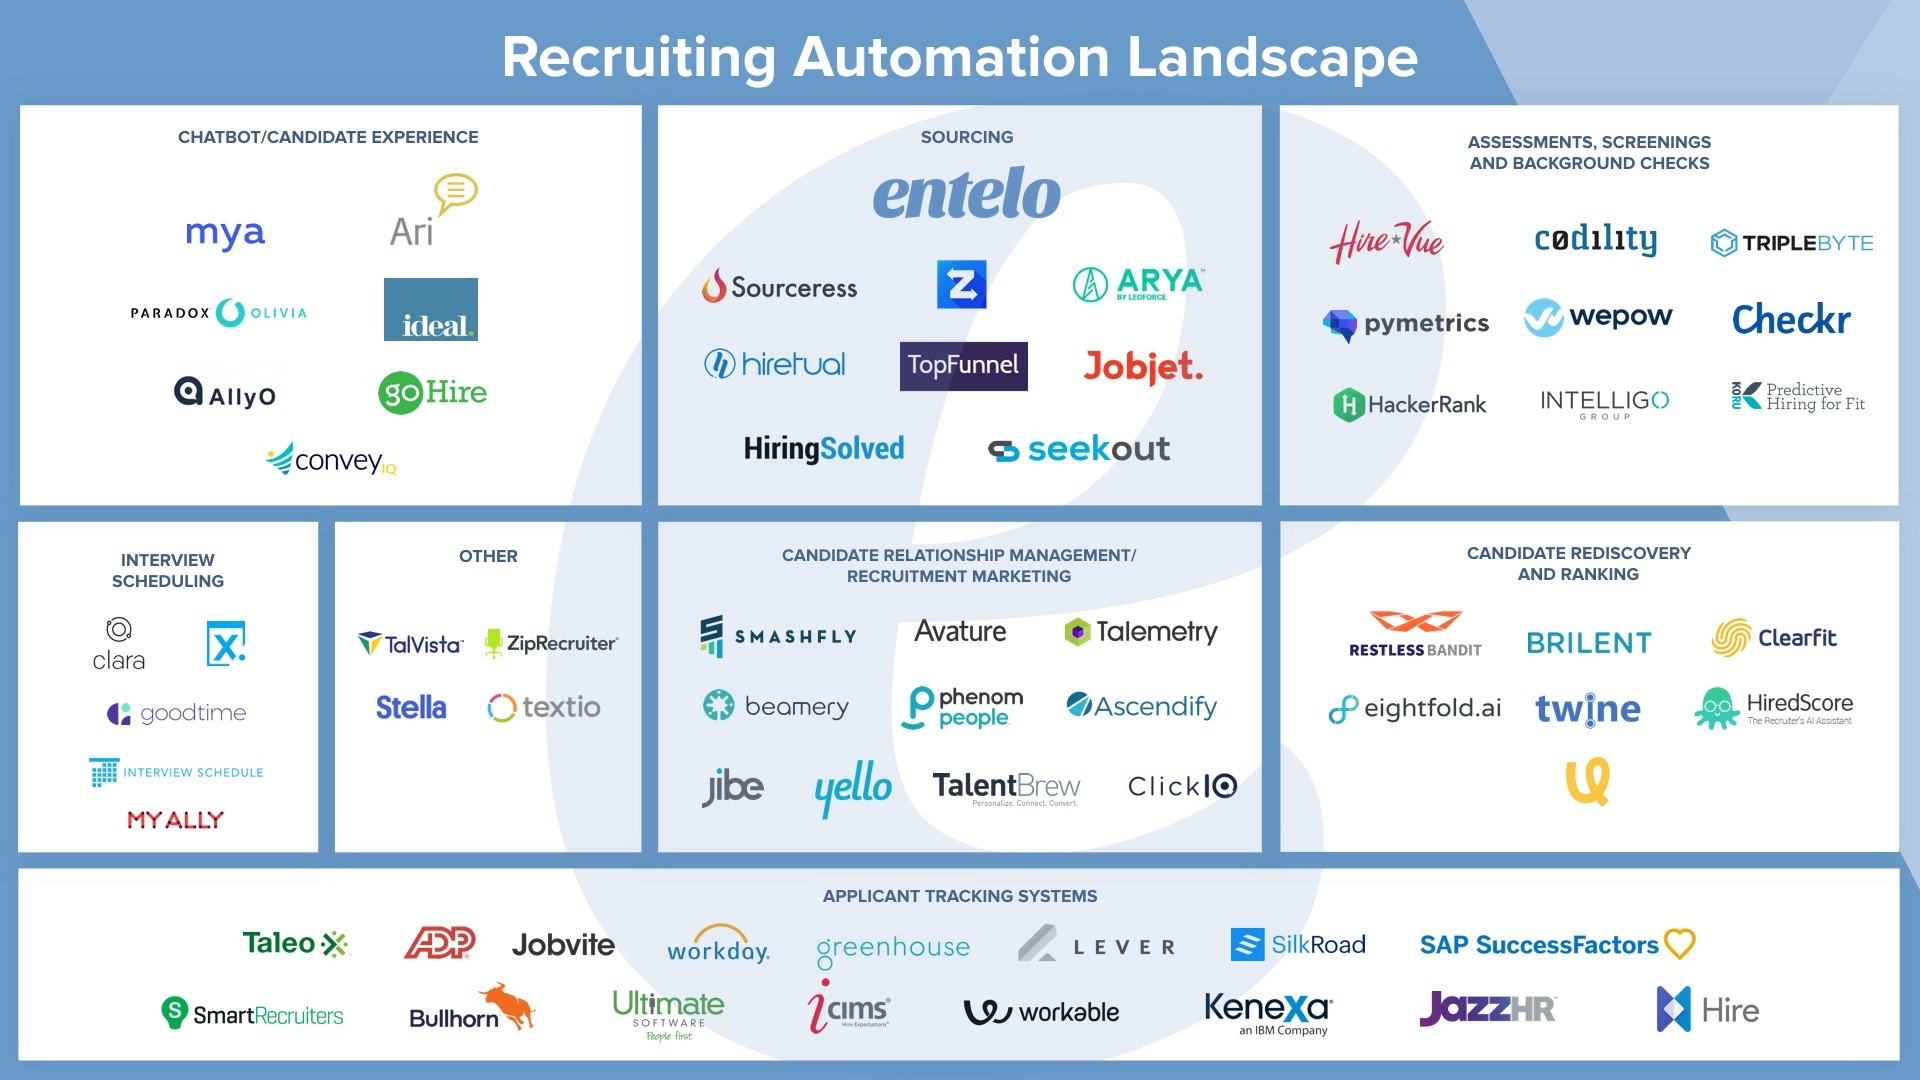 Recruiting Automation Landscape Image